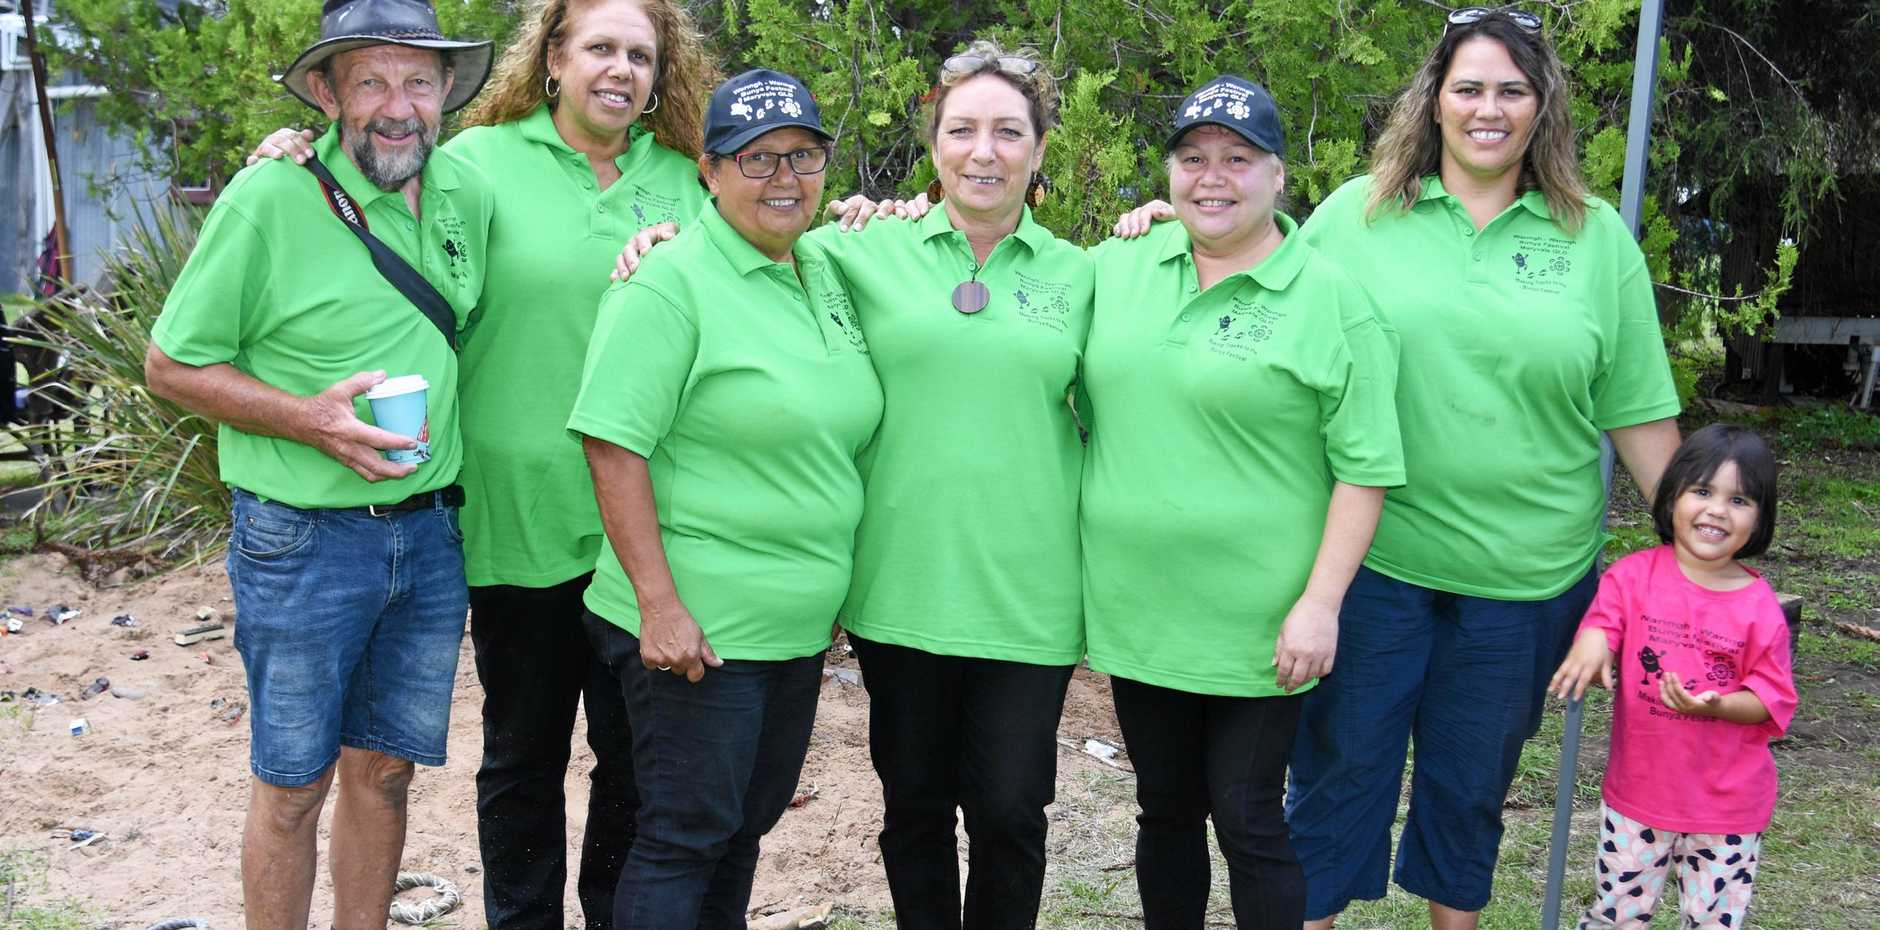 CREATING CHANGE: Waringh Waringh chairwoman Mandy Bahr (third from left) with committee members (from left) David Parsons, Delphine Charles, Diana Pratt, Joanne Wallace, and Melissa and Willow Chalmers at the Bunya Festival.